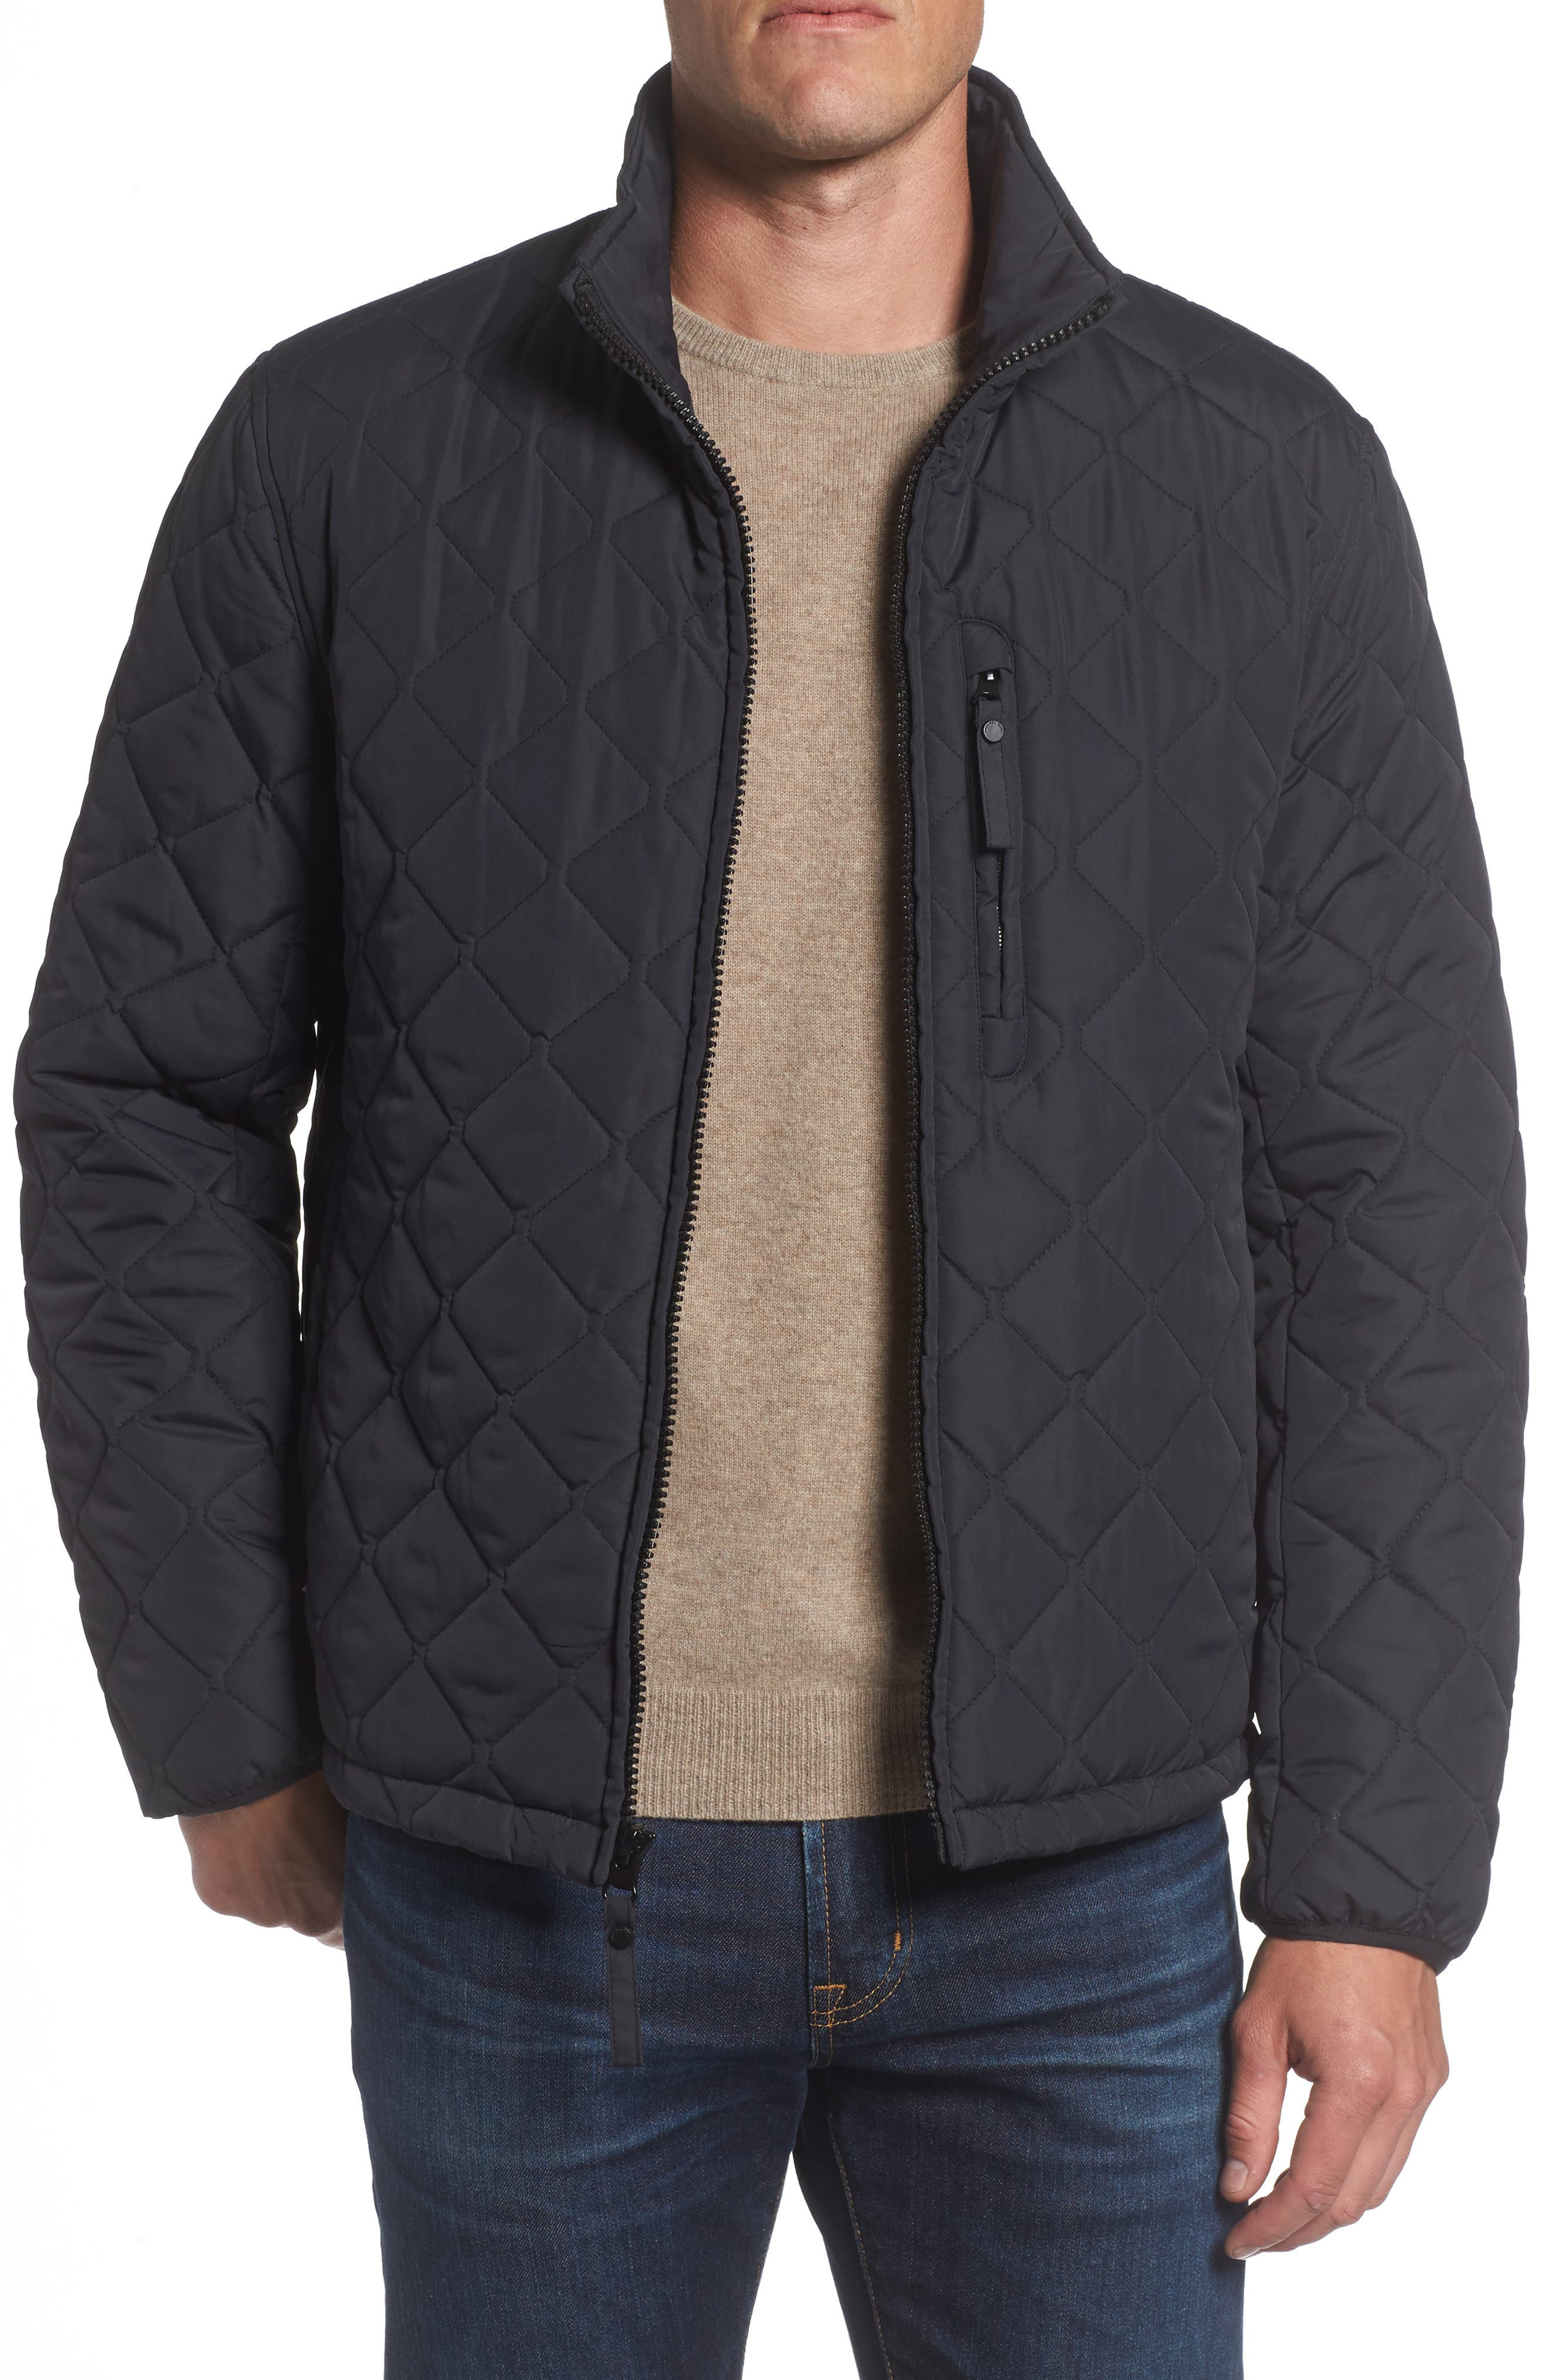 Alternate Image 1 Selected - Marc New York Faux Shearling Lined Quilted Jacket